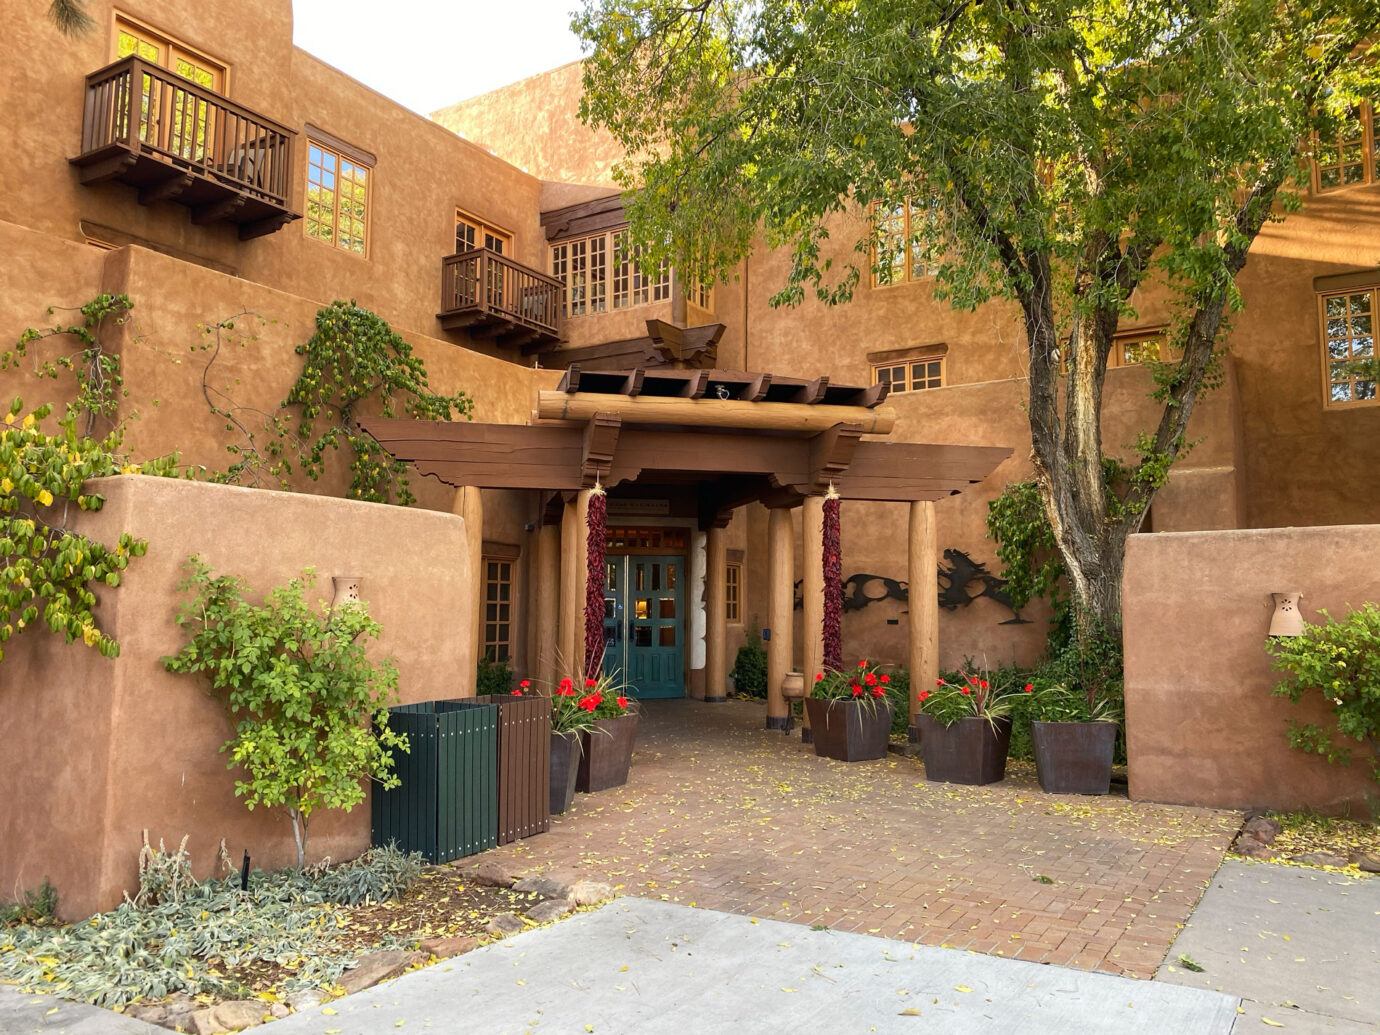 Exterior of Hotel Santa Fe, Hacienda & Spa